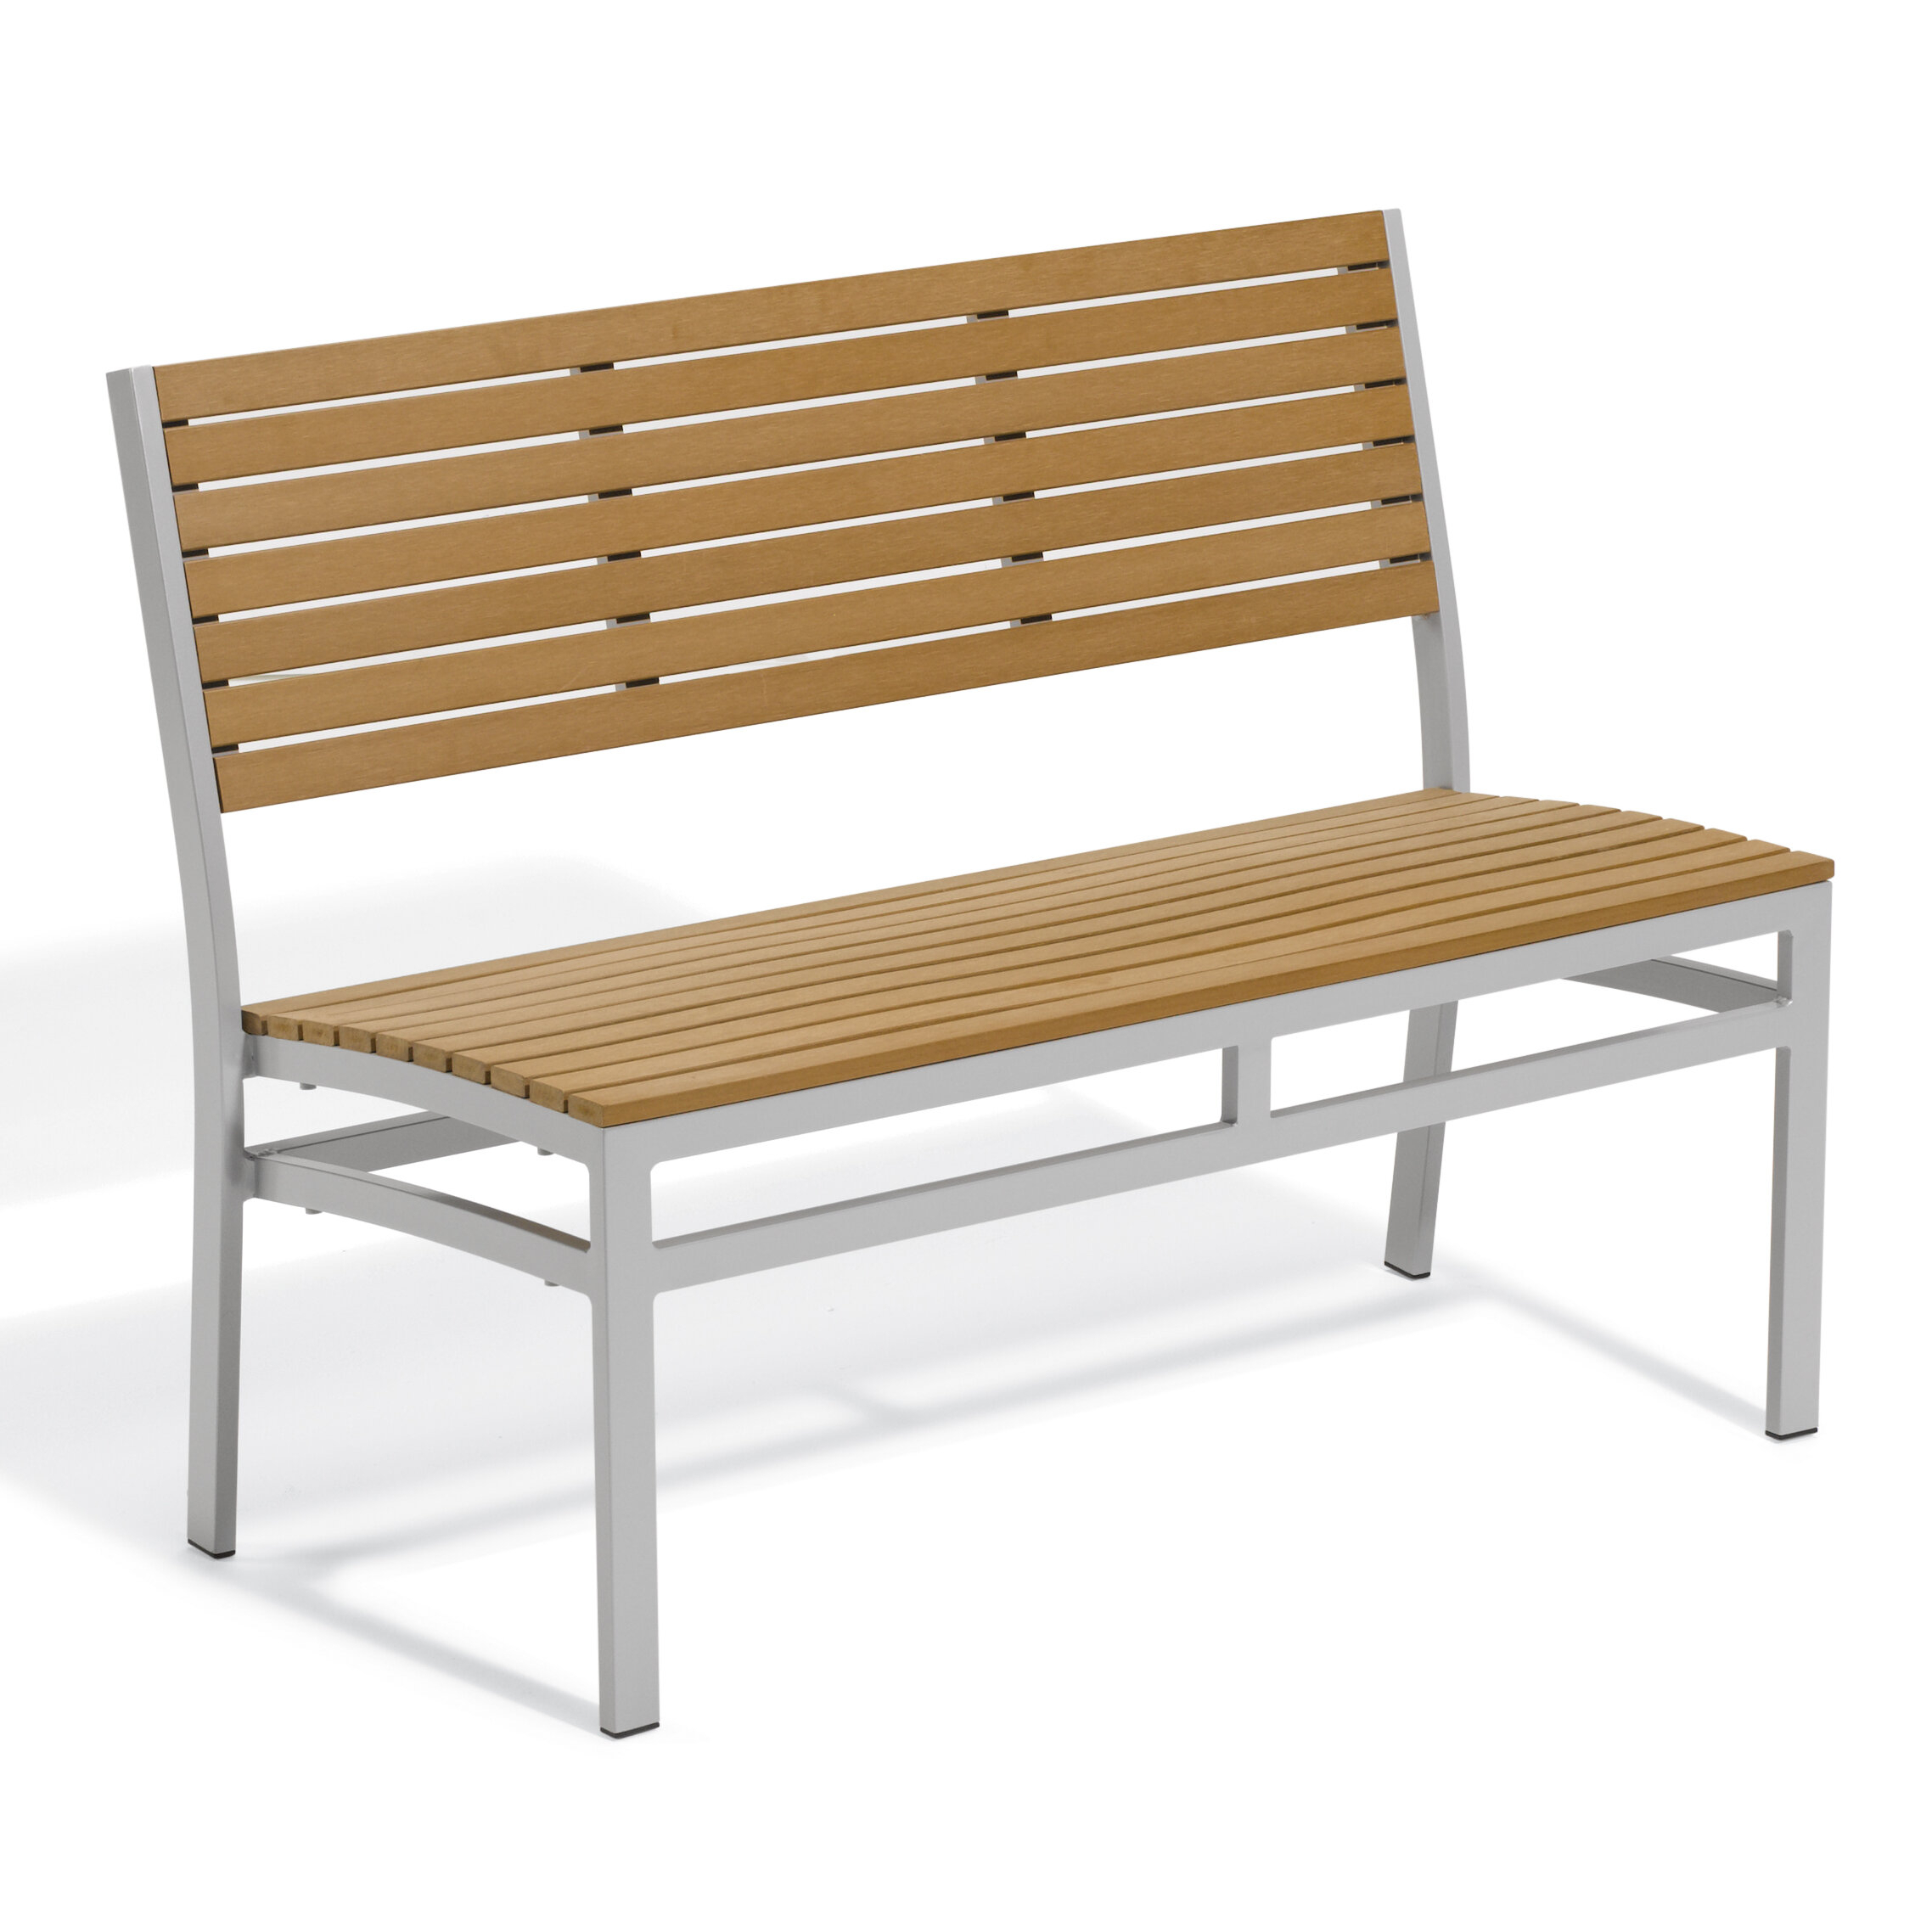 Denson Aluminum Garden Bench Pertaining To Alvah Slatted Cast Iron And Tubular Steel Garden Benches (View 22 of 25)